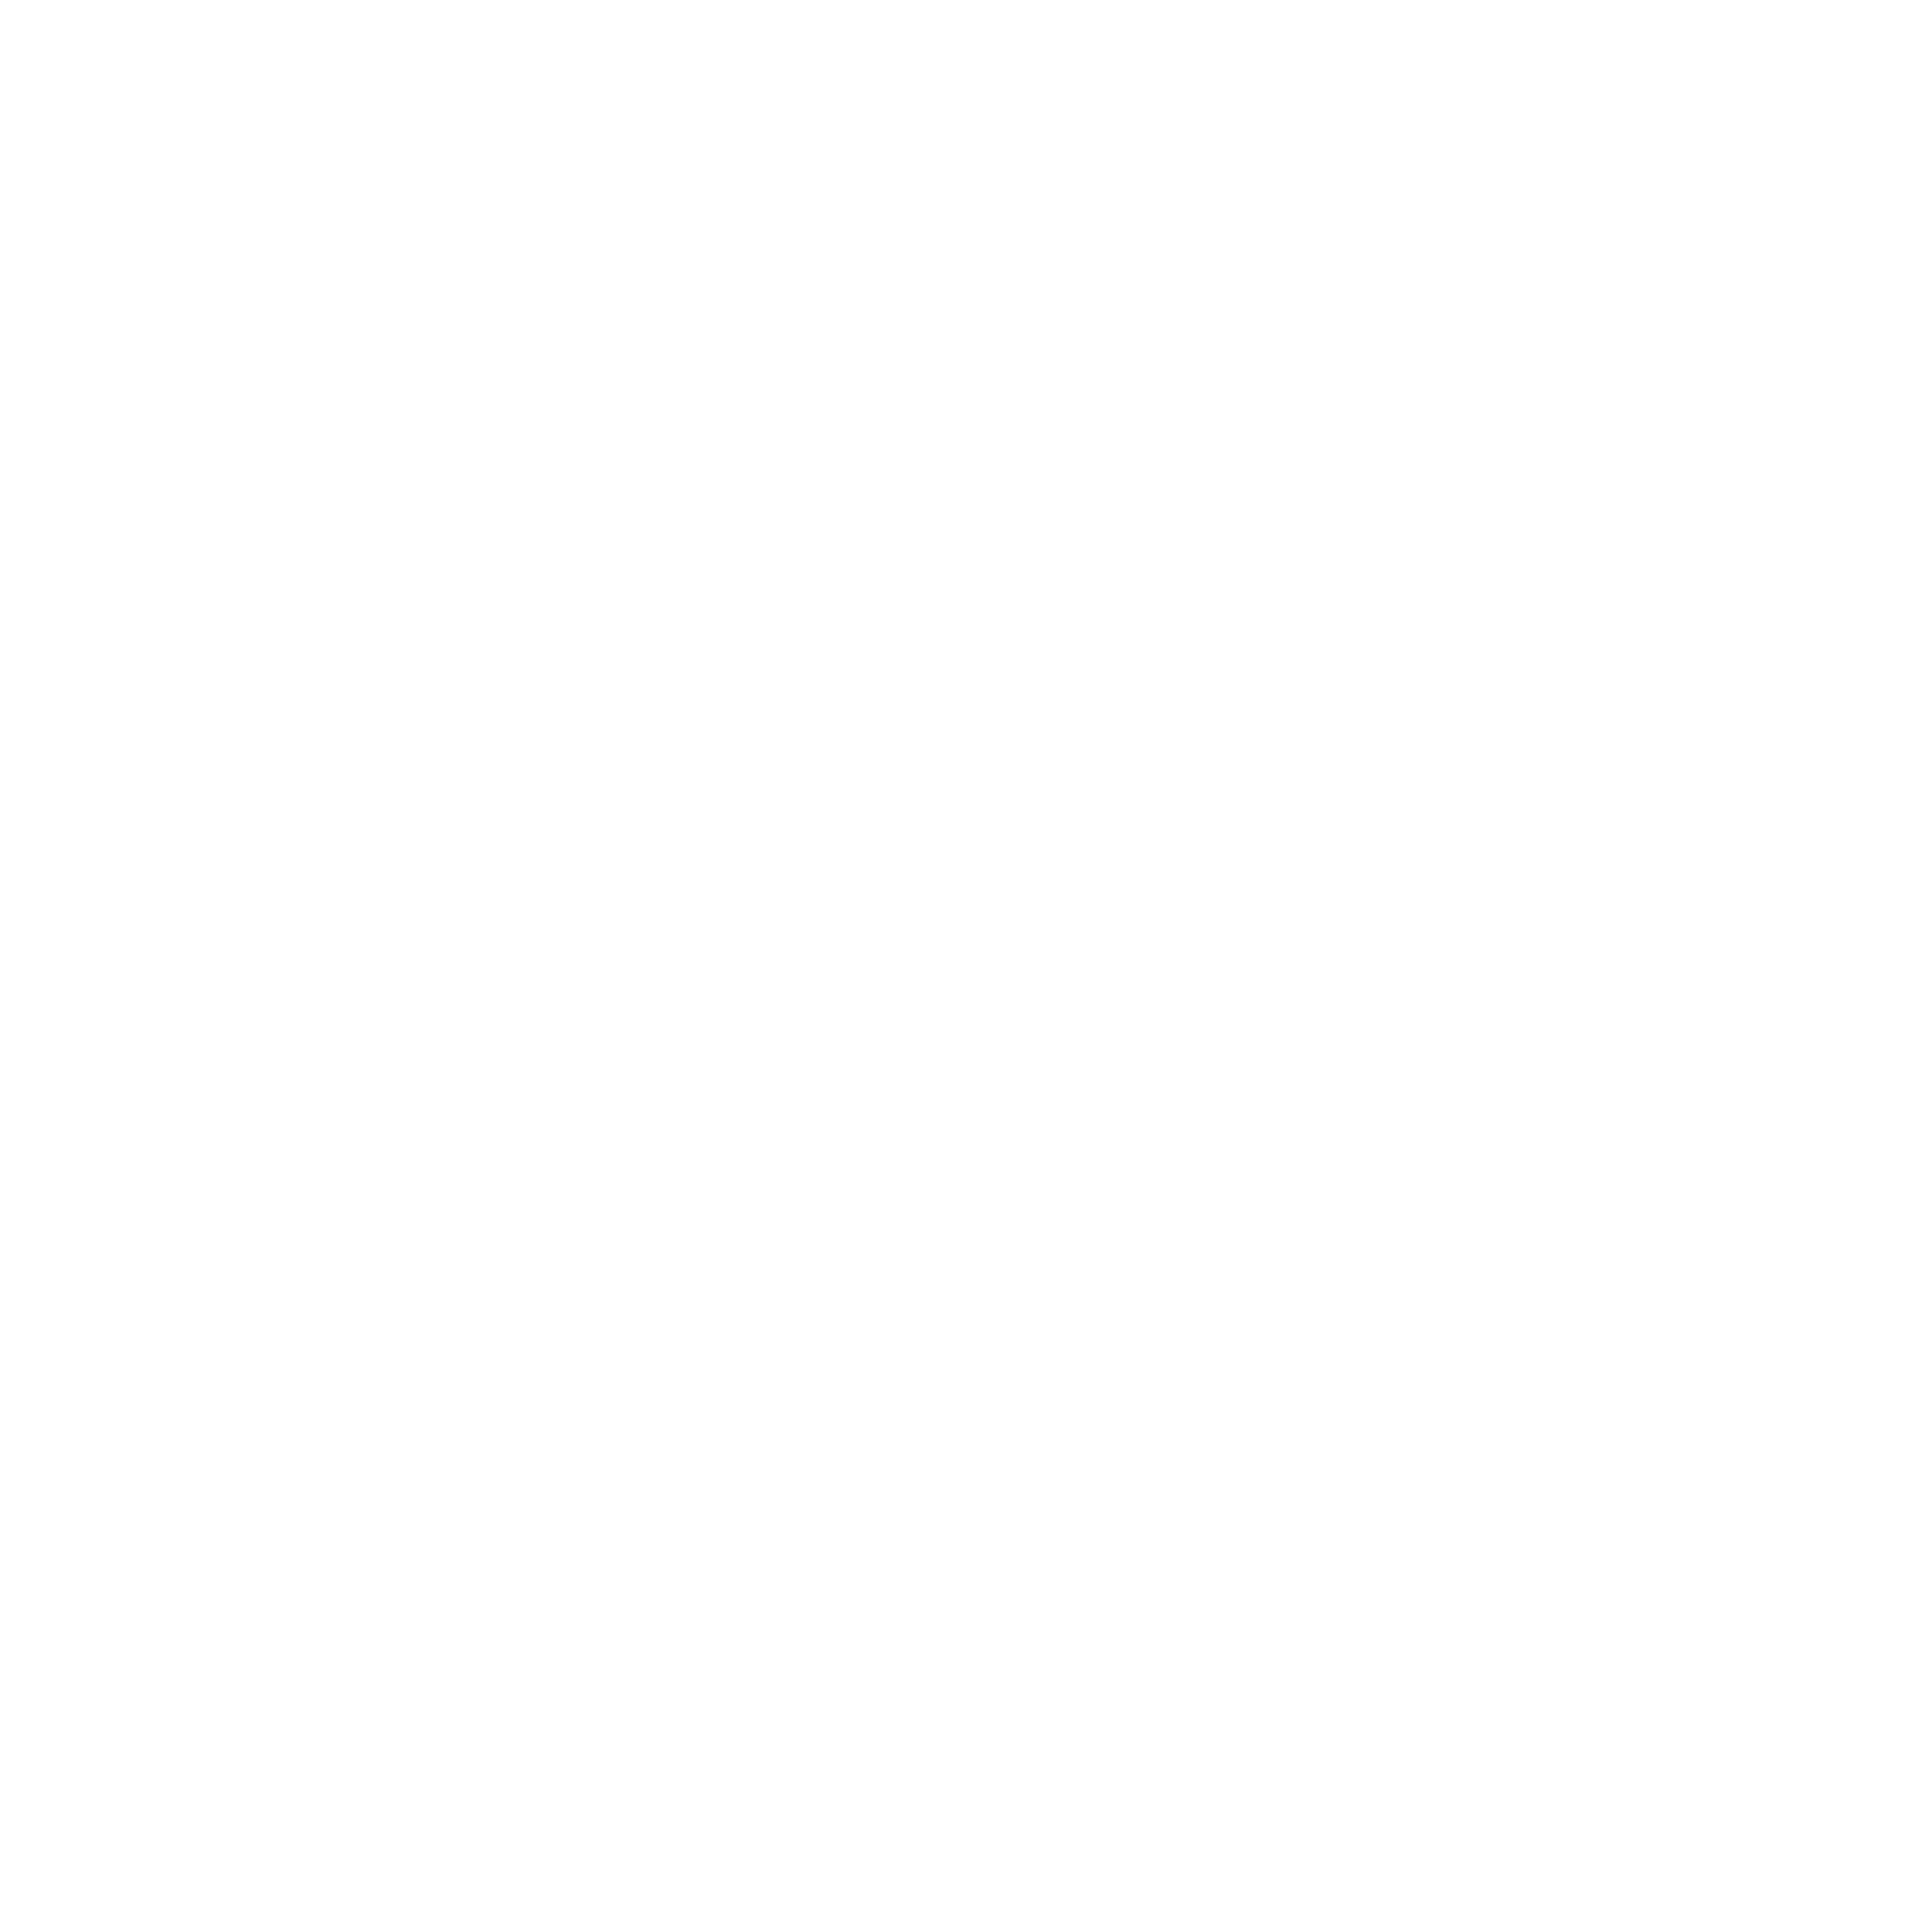 eR&D variant of Hydronic College logo